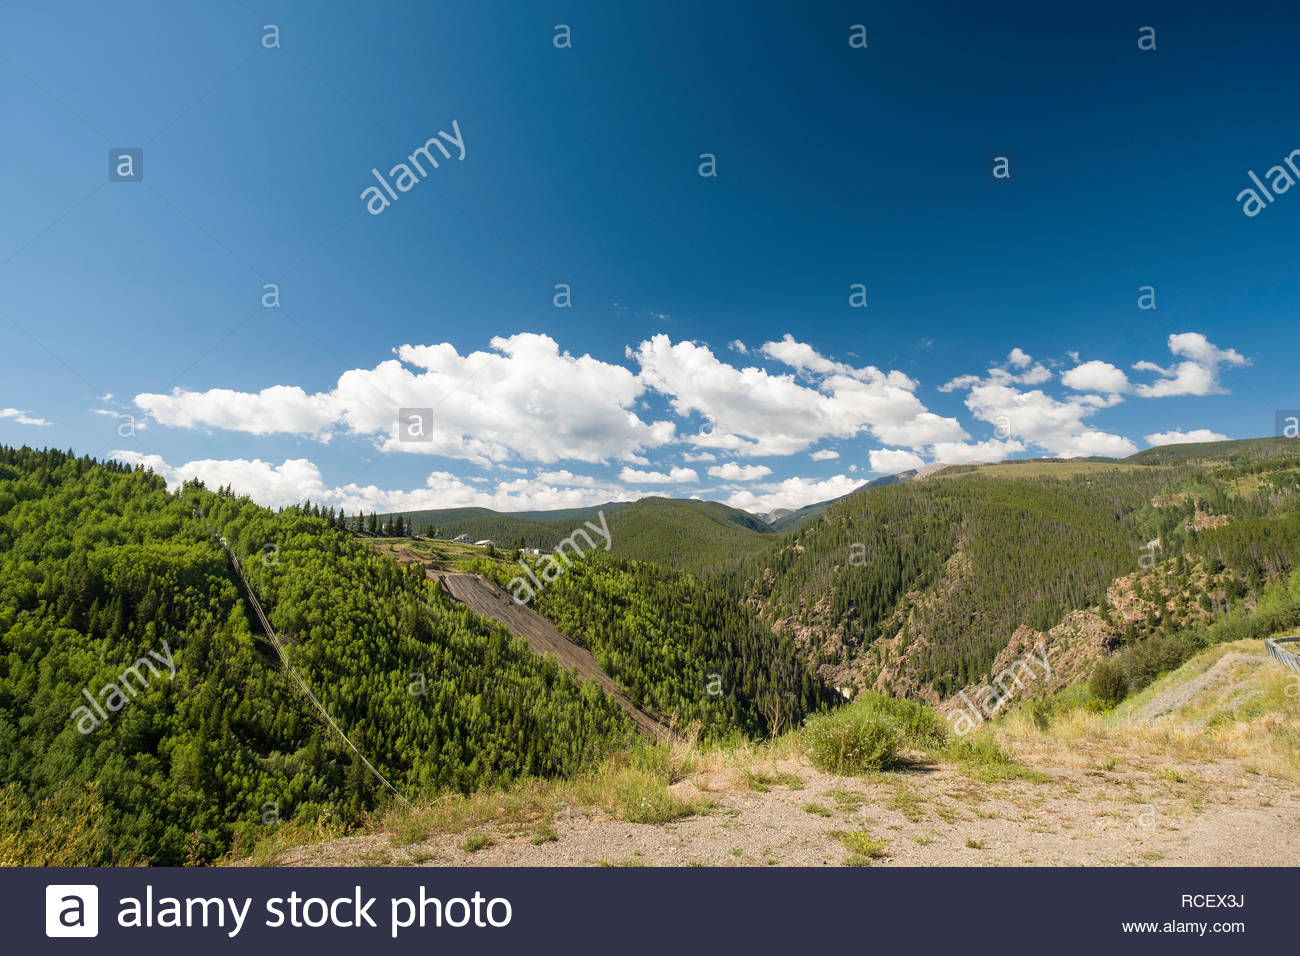 Dilapidate buildings in Gilman an abandoned mining town because of toxic pollutants, including contamination of the ground water, Eagle County, Colora - Stock Image